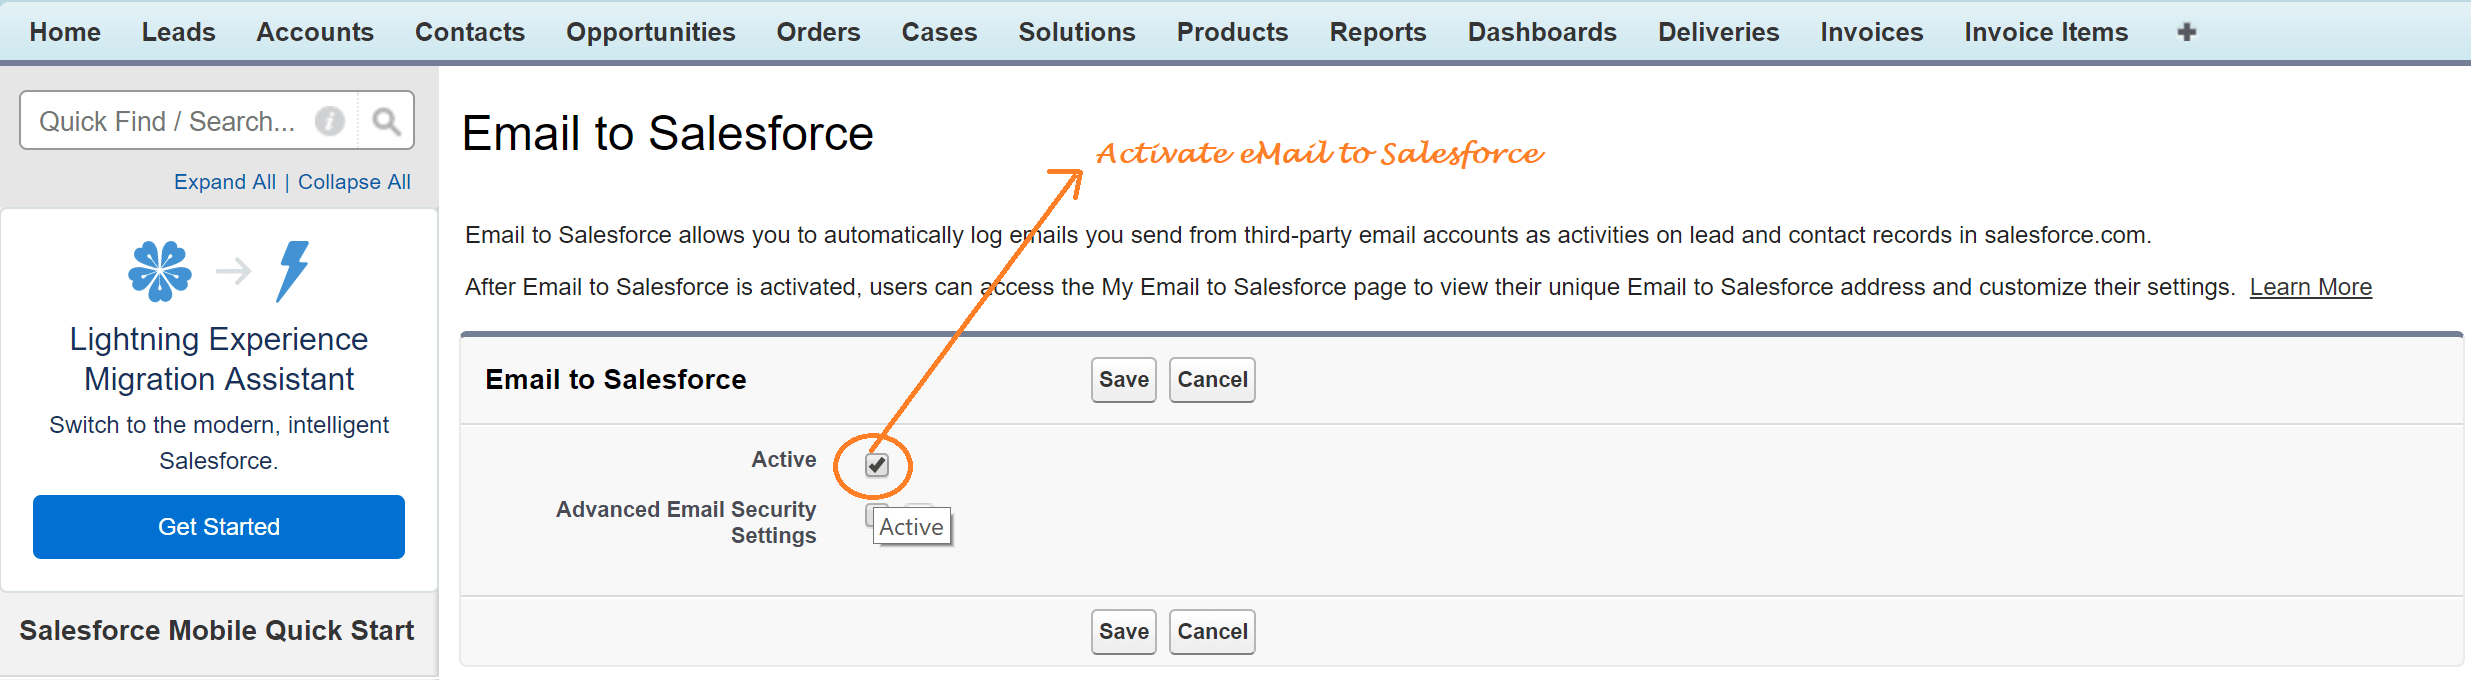 Activate the email to salesforce